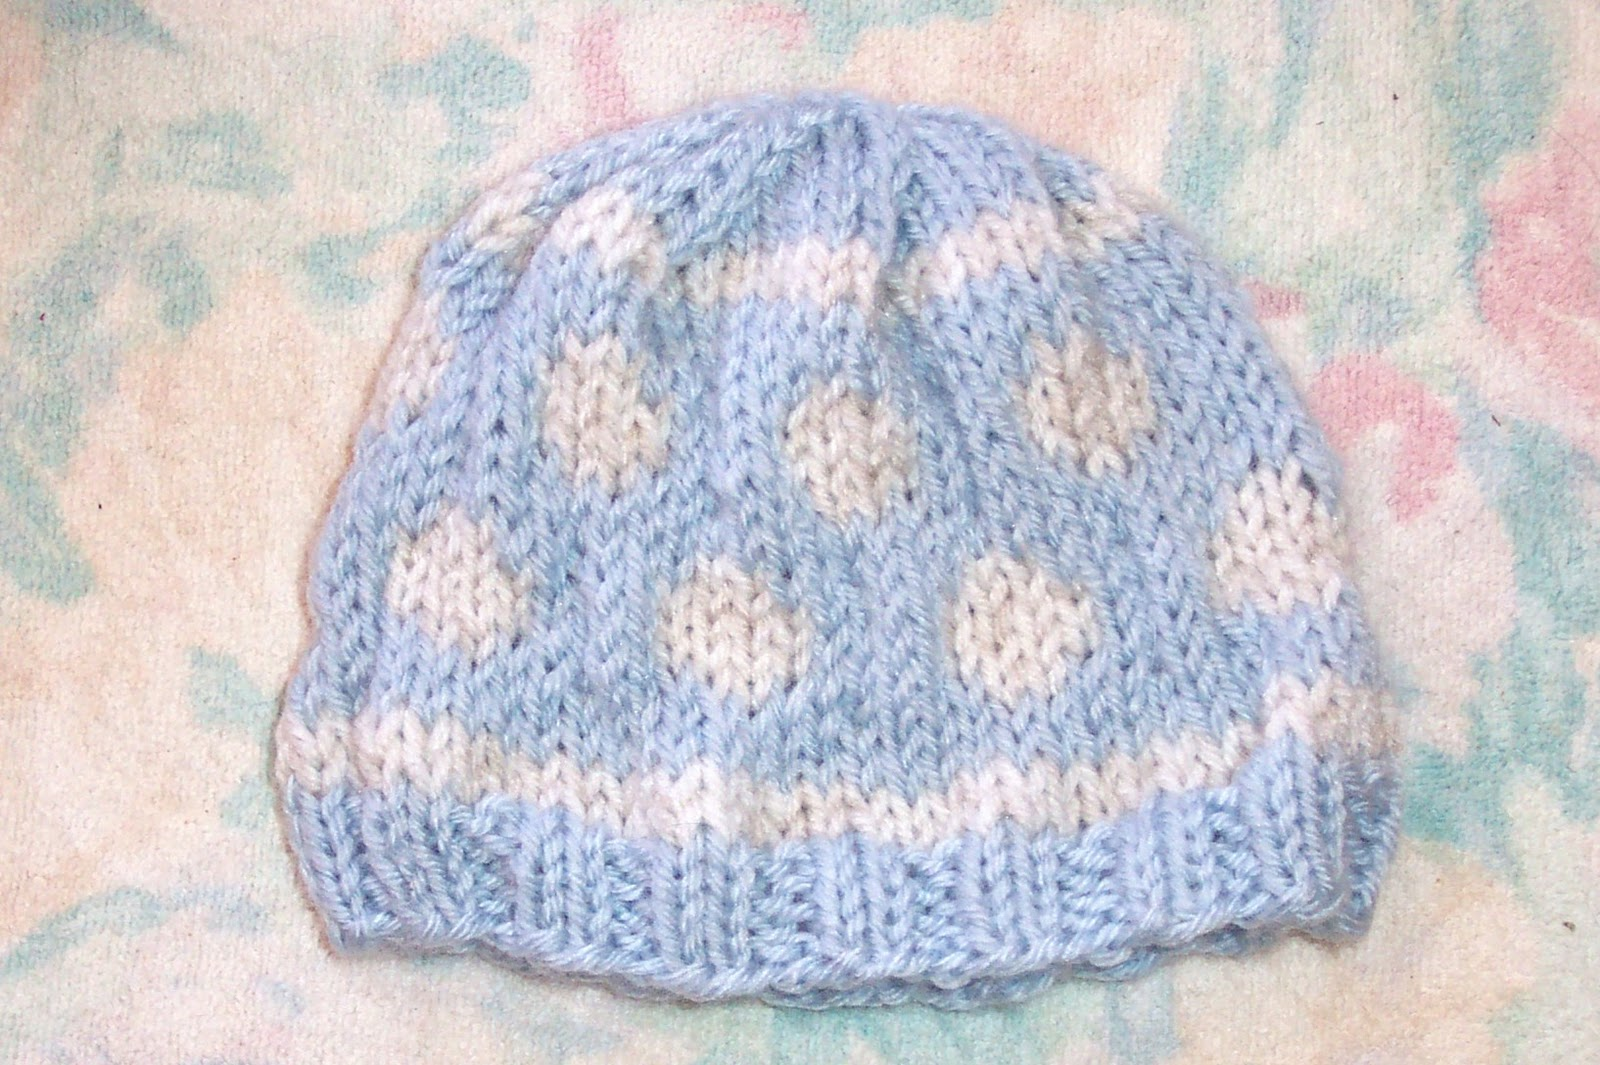 Knitted Baby Beanies Free Patterns : SmoothFox Crochet and Knit: SmoothFoxs Baby Bubbles Knit ...